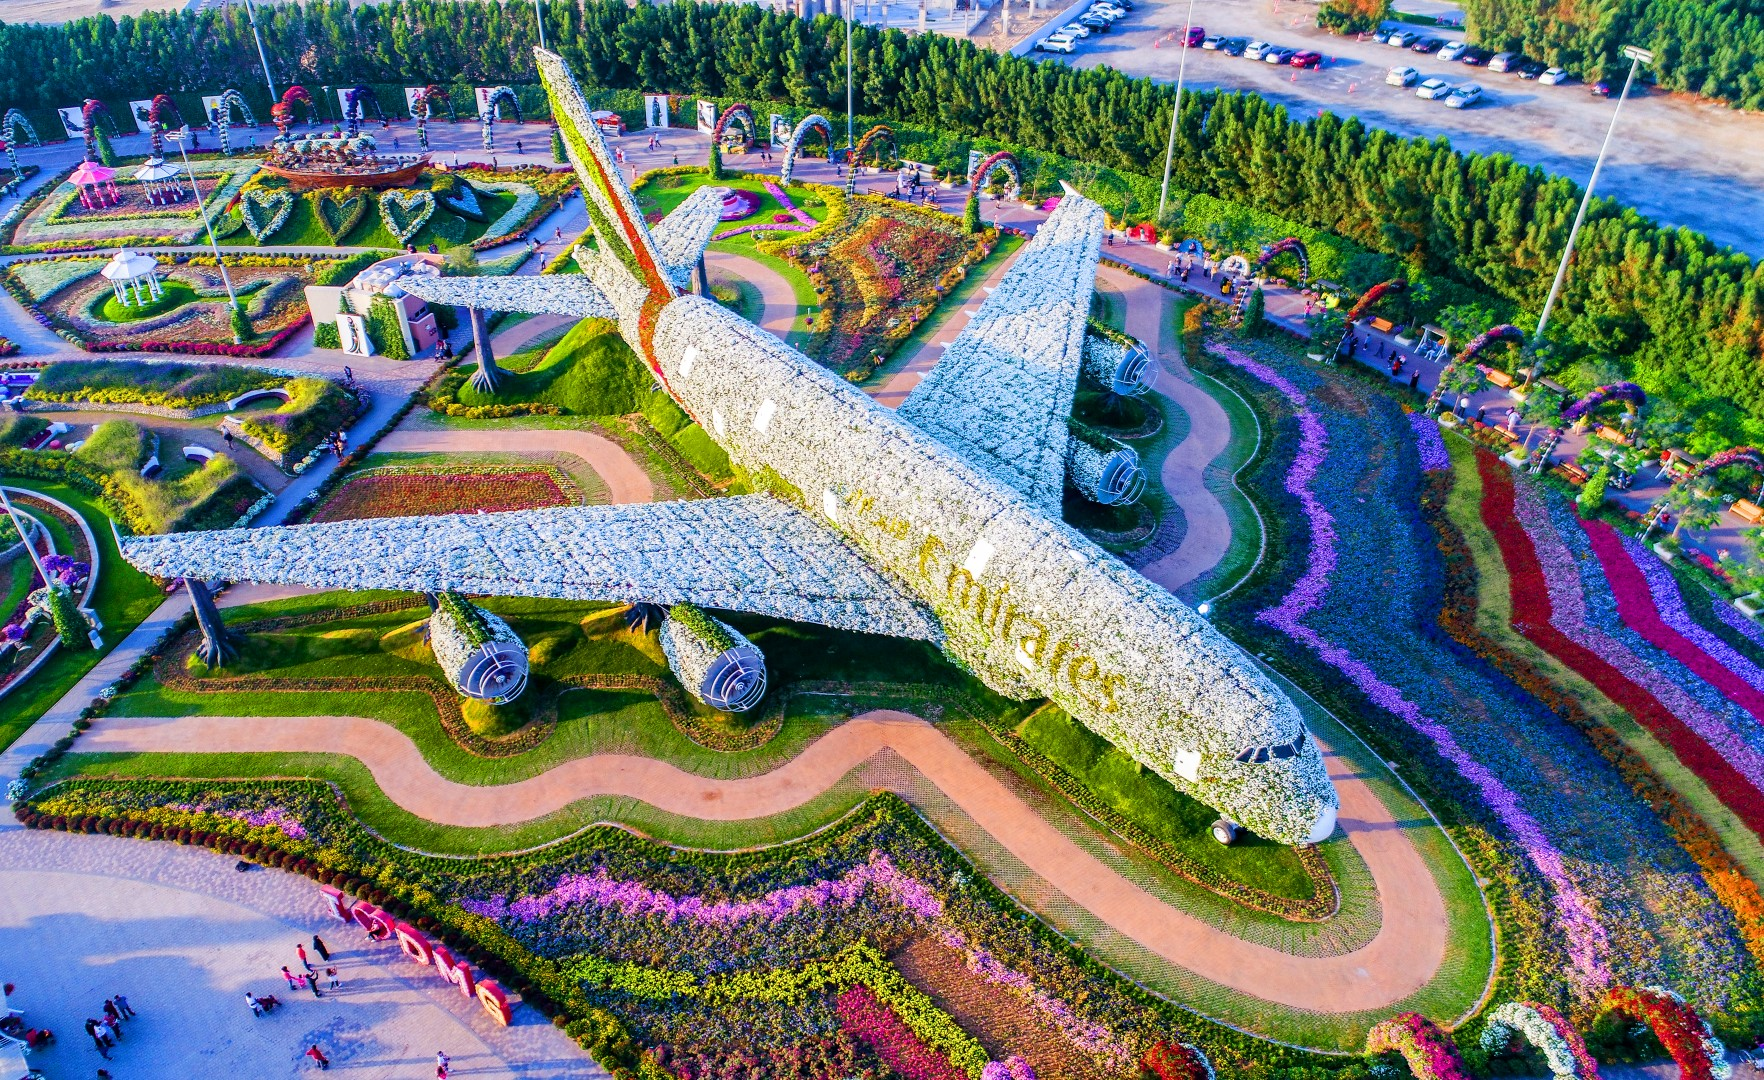 The world's largest natural flower garden in the middle of the desert